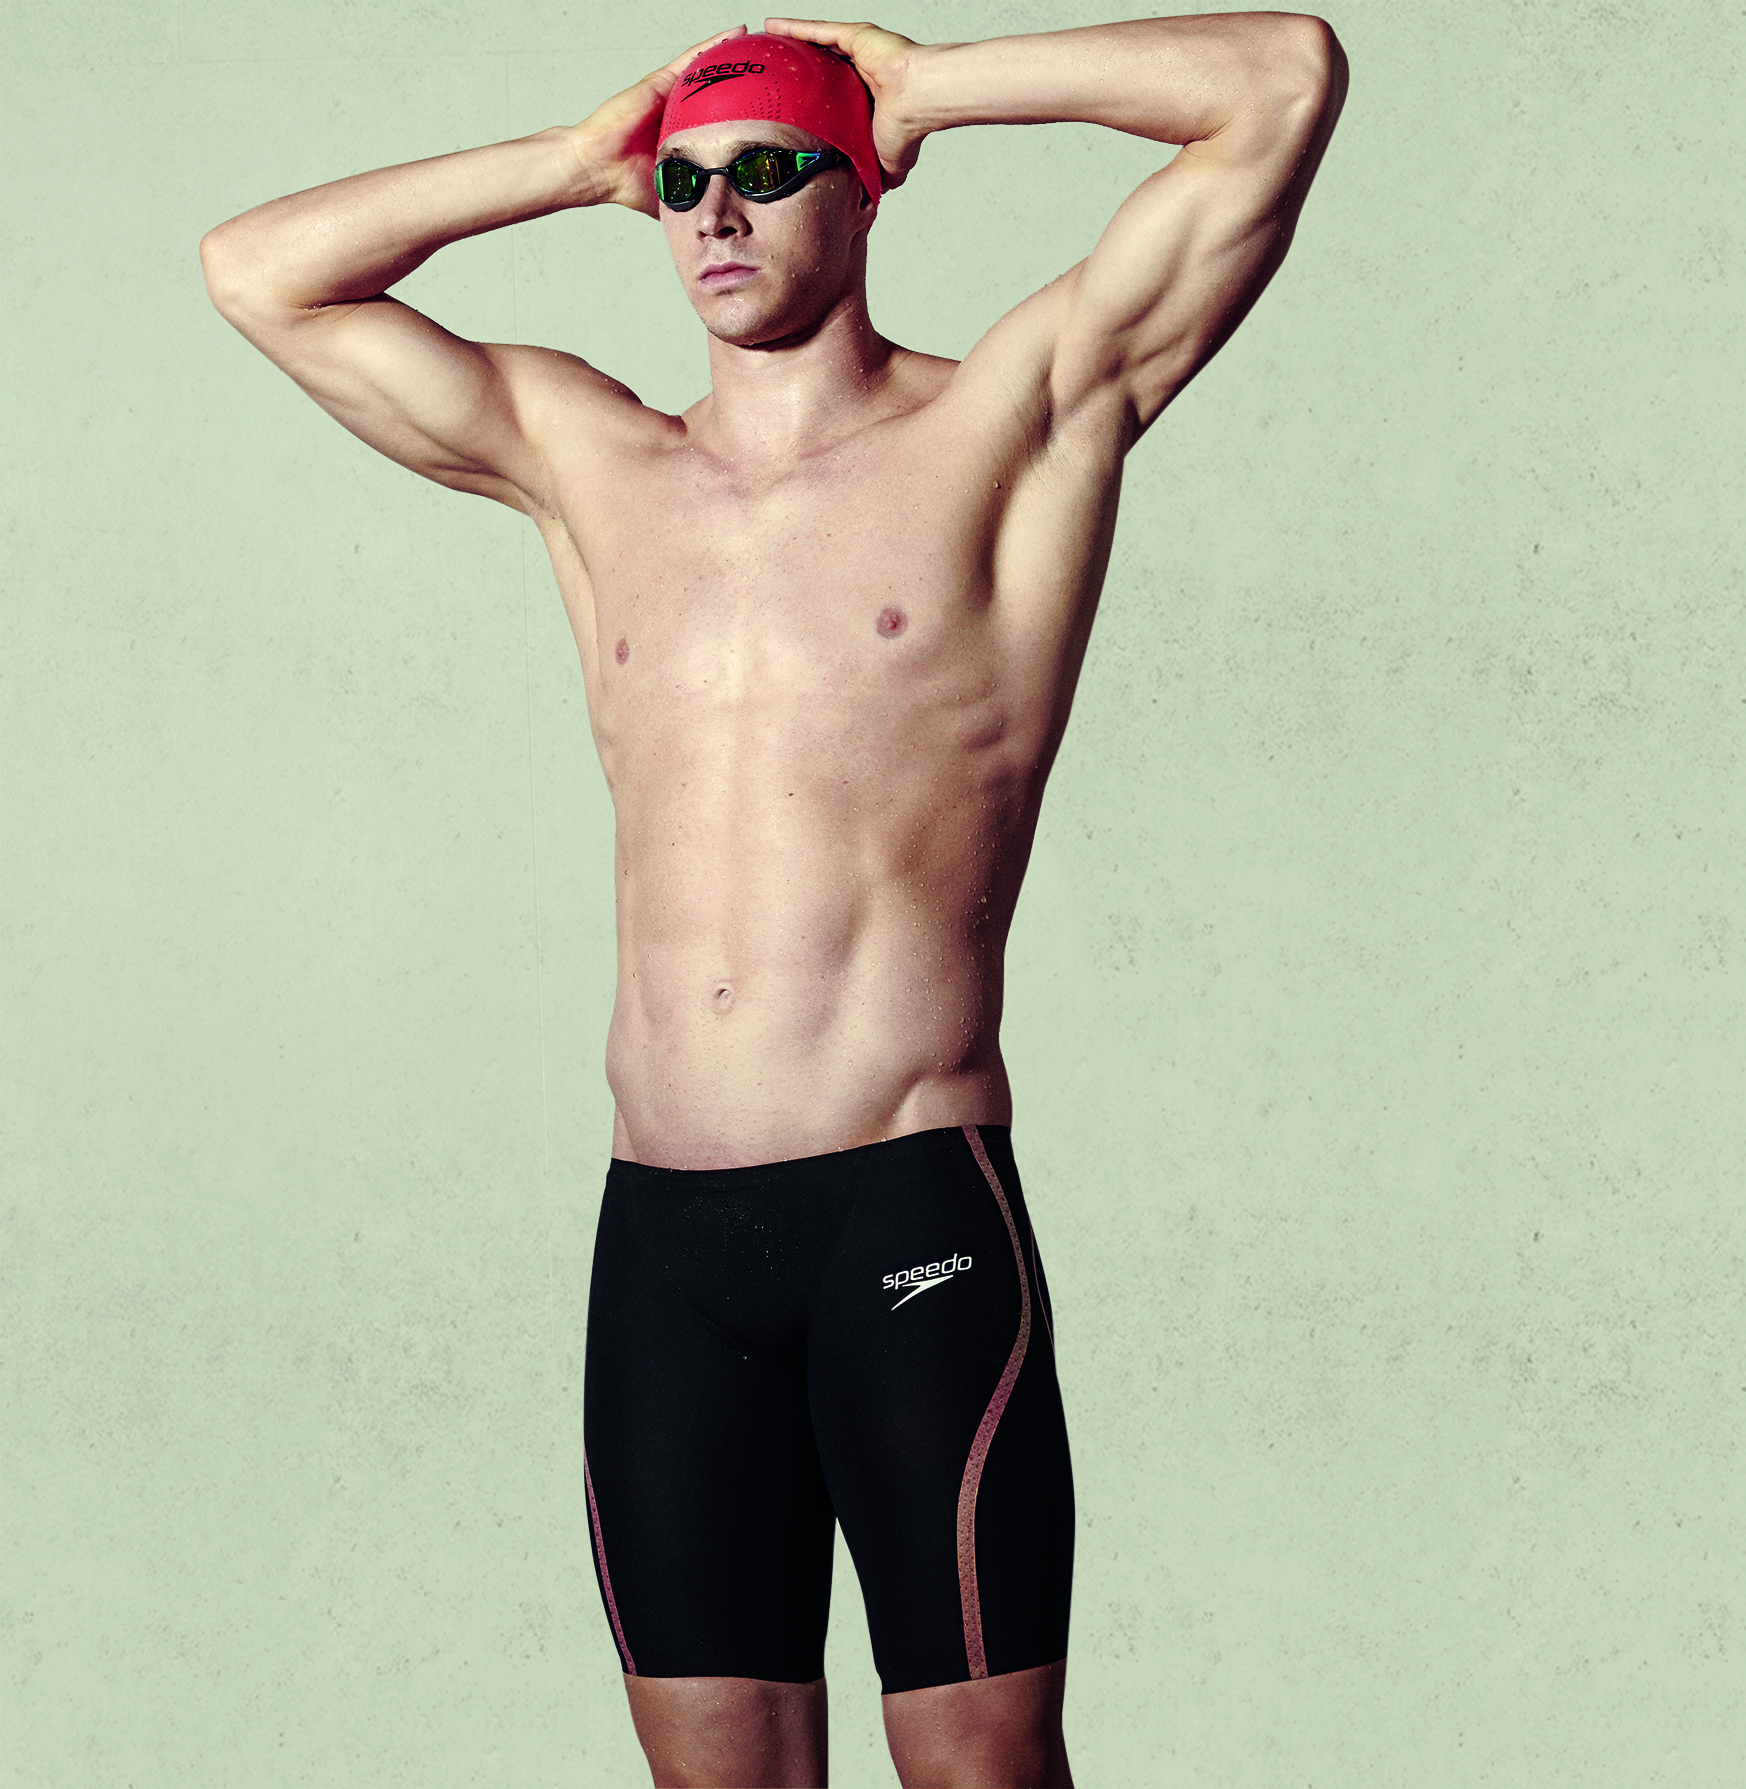 Ryan Murphy Shares His Thoughts on the New Speedo Fastskin